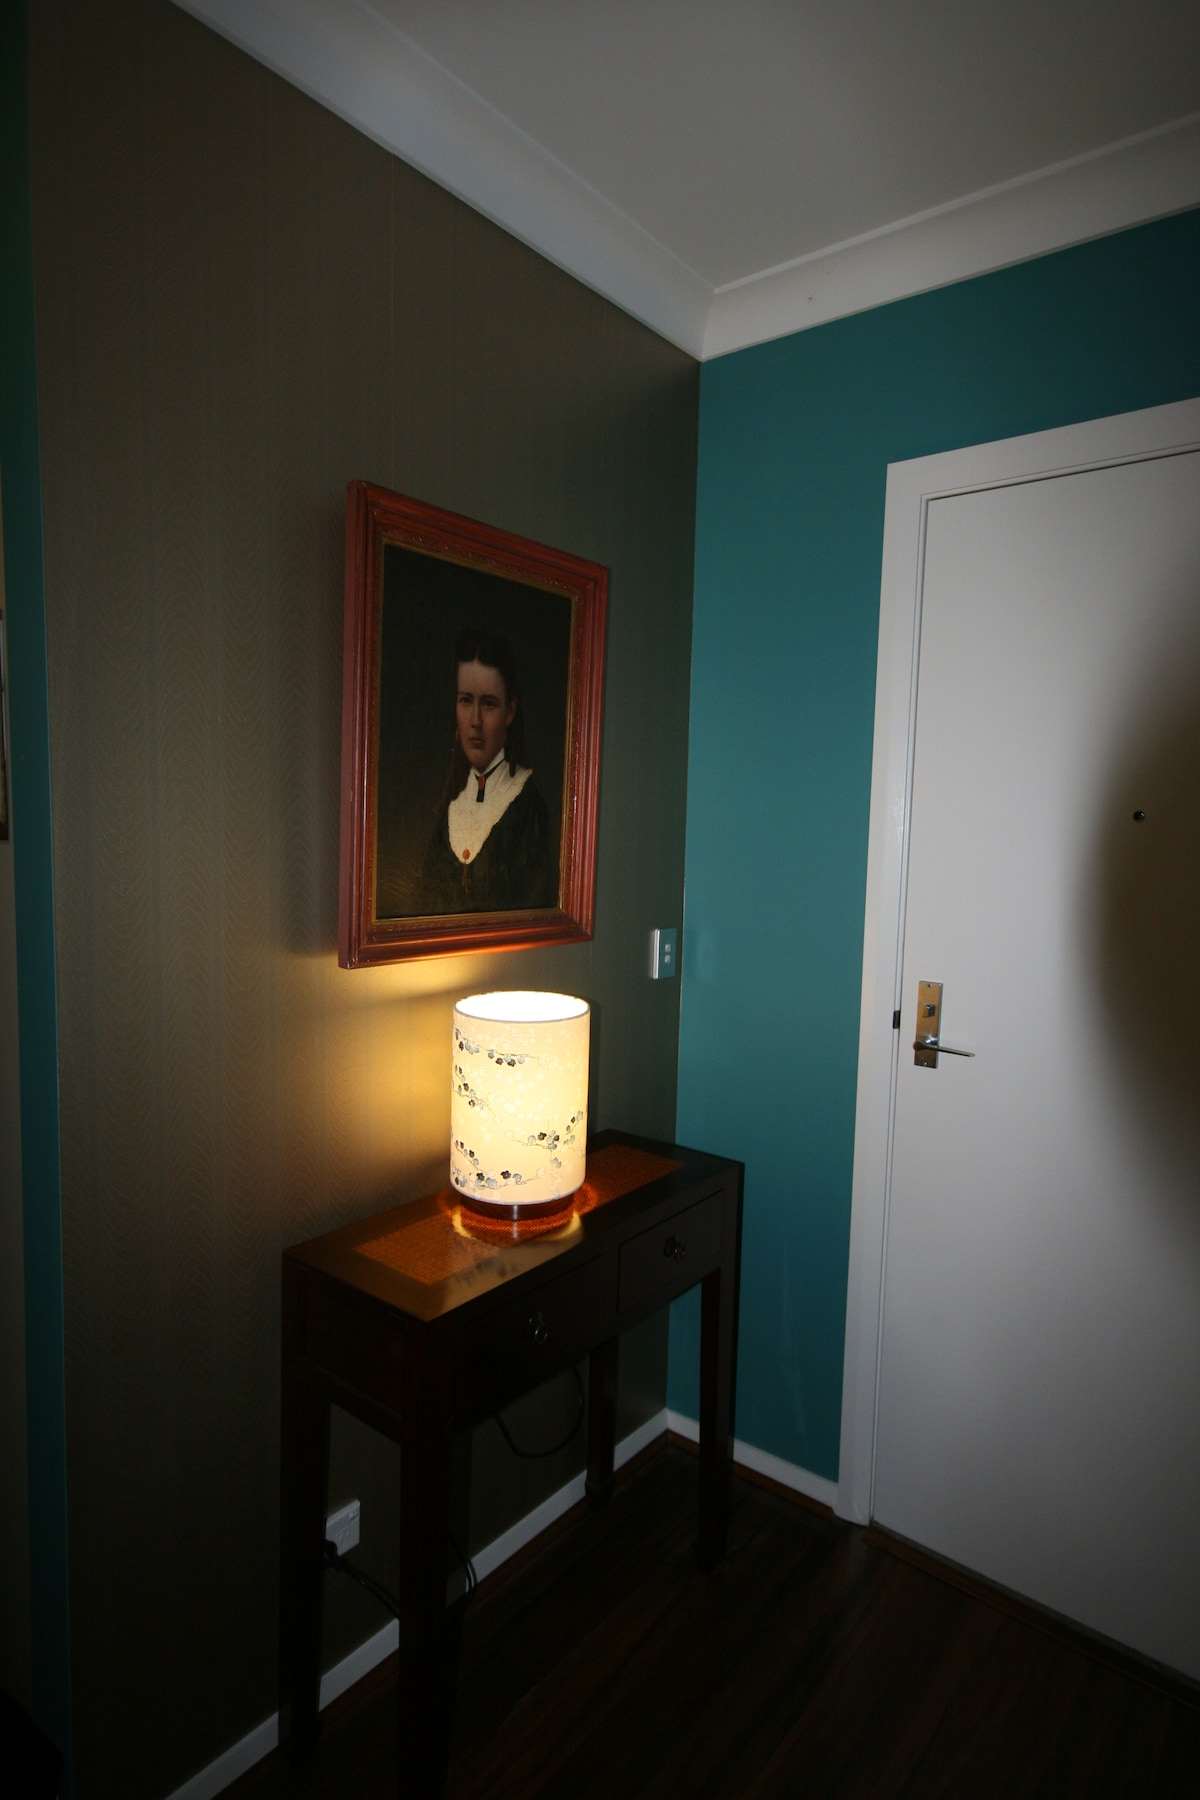 Old painting, new lamp, from local designer Graham and Graham of redfern